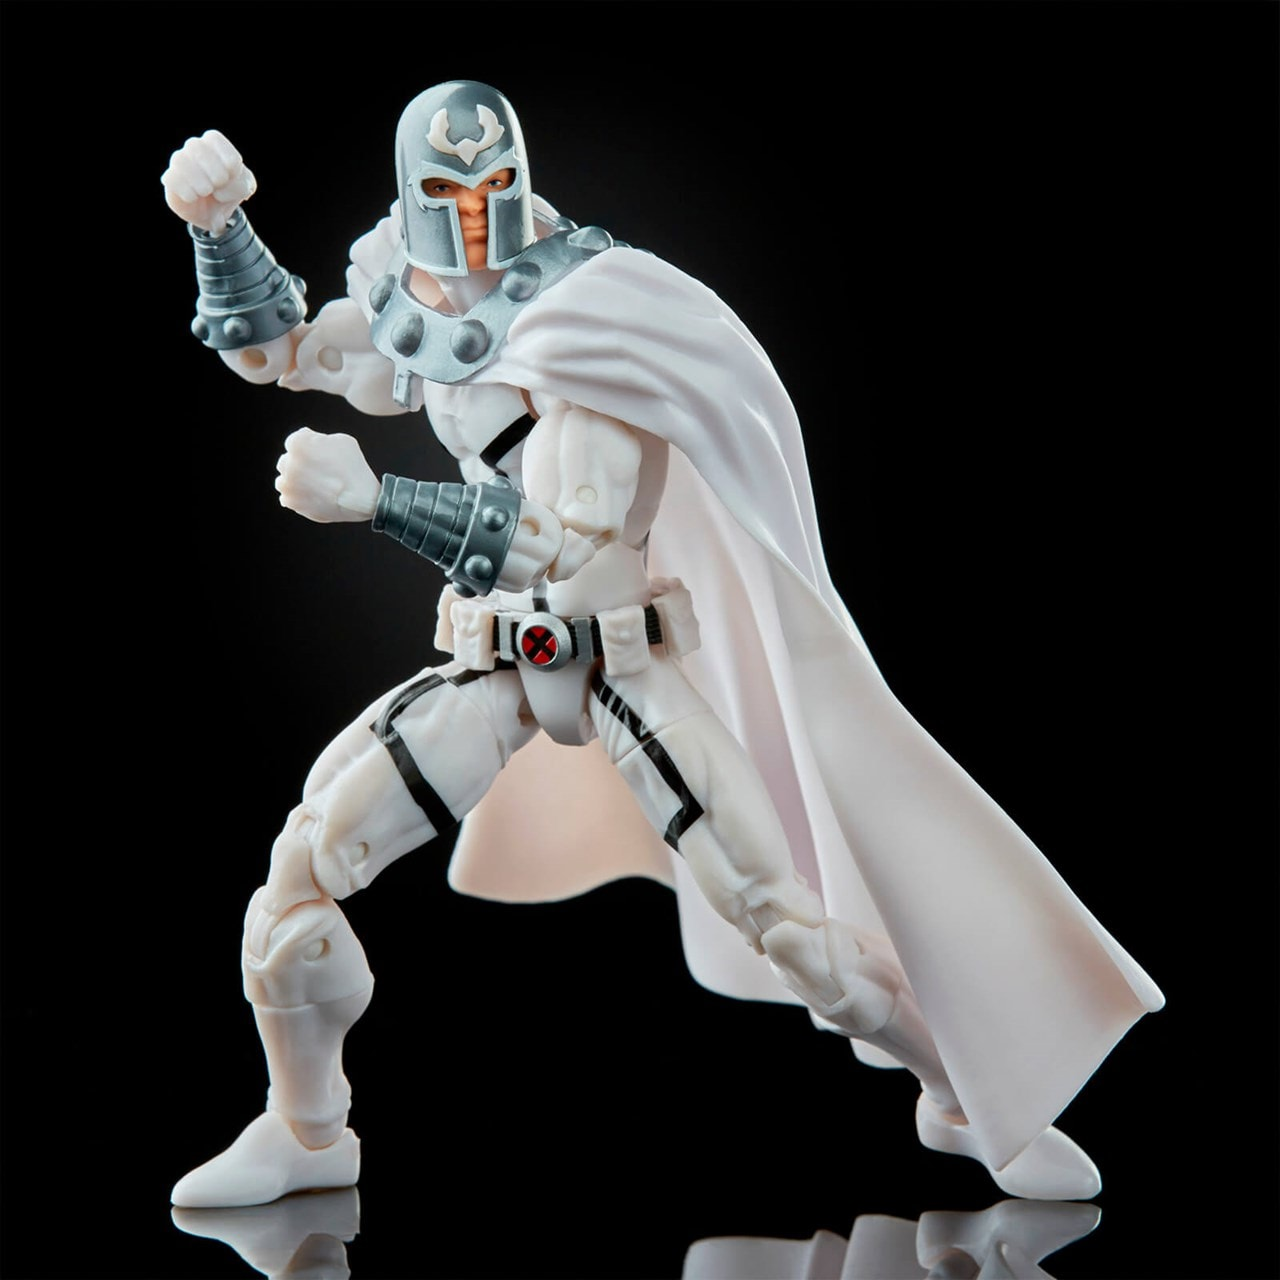 Marvel Legends Series X-Men Magneto Action Figure - 1